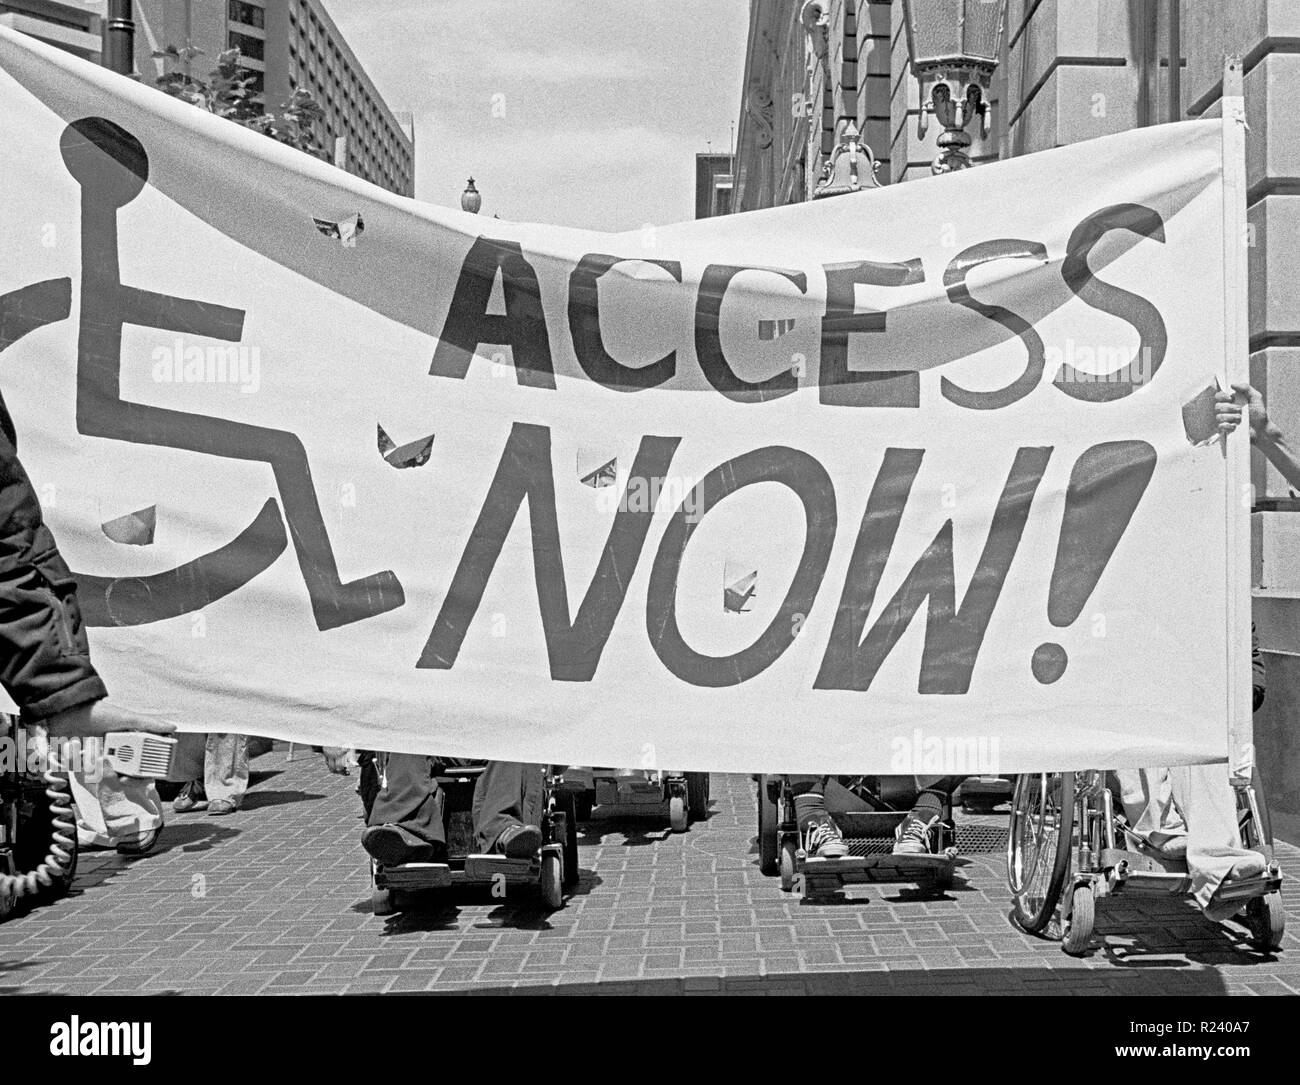 disabled activist protest lack of access to public transportation in San Francisco,. California, /1978 - Stock Image